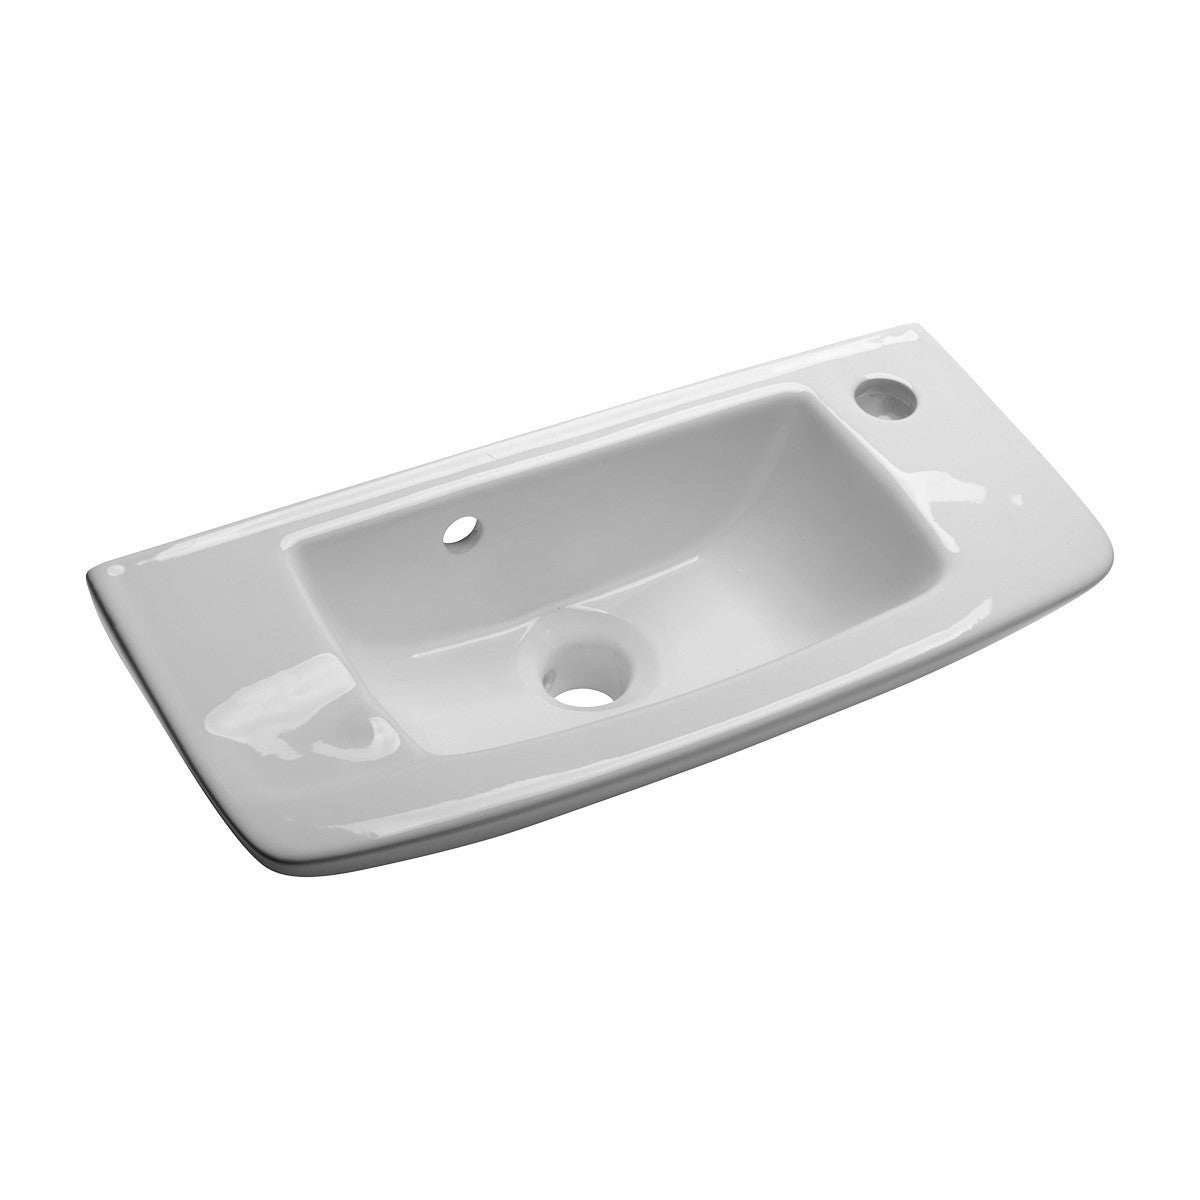 small vessel sinks. Shop Small Bathroom Wall Mount Sink, Overflow, Easy Install Clean Gloss Finish - Free Shipping Today Overstock.com 12537910 Vessel Sinks G